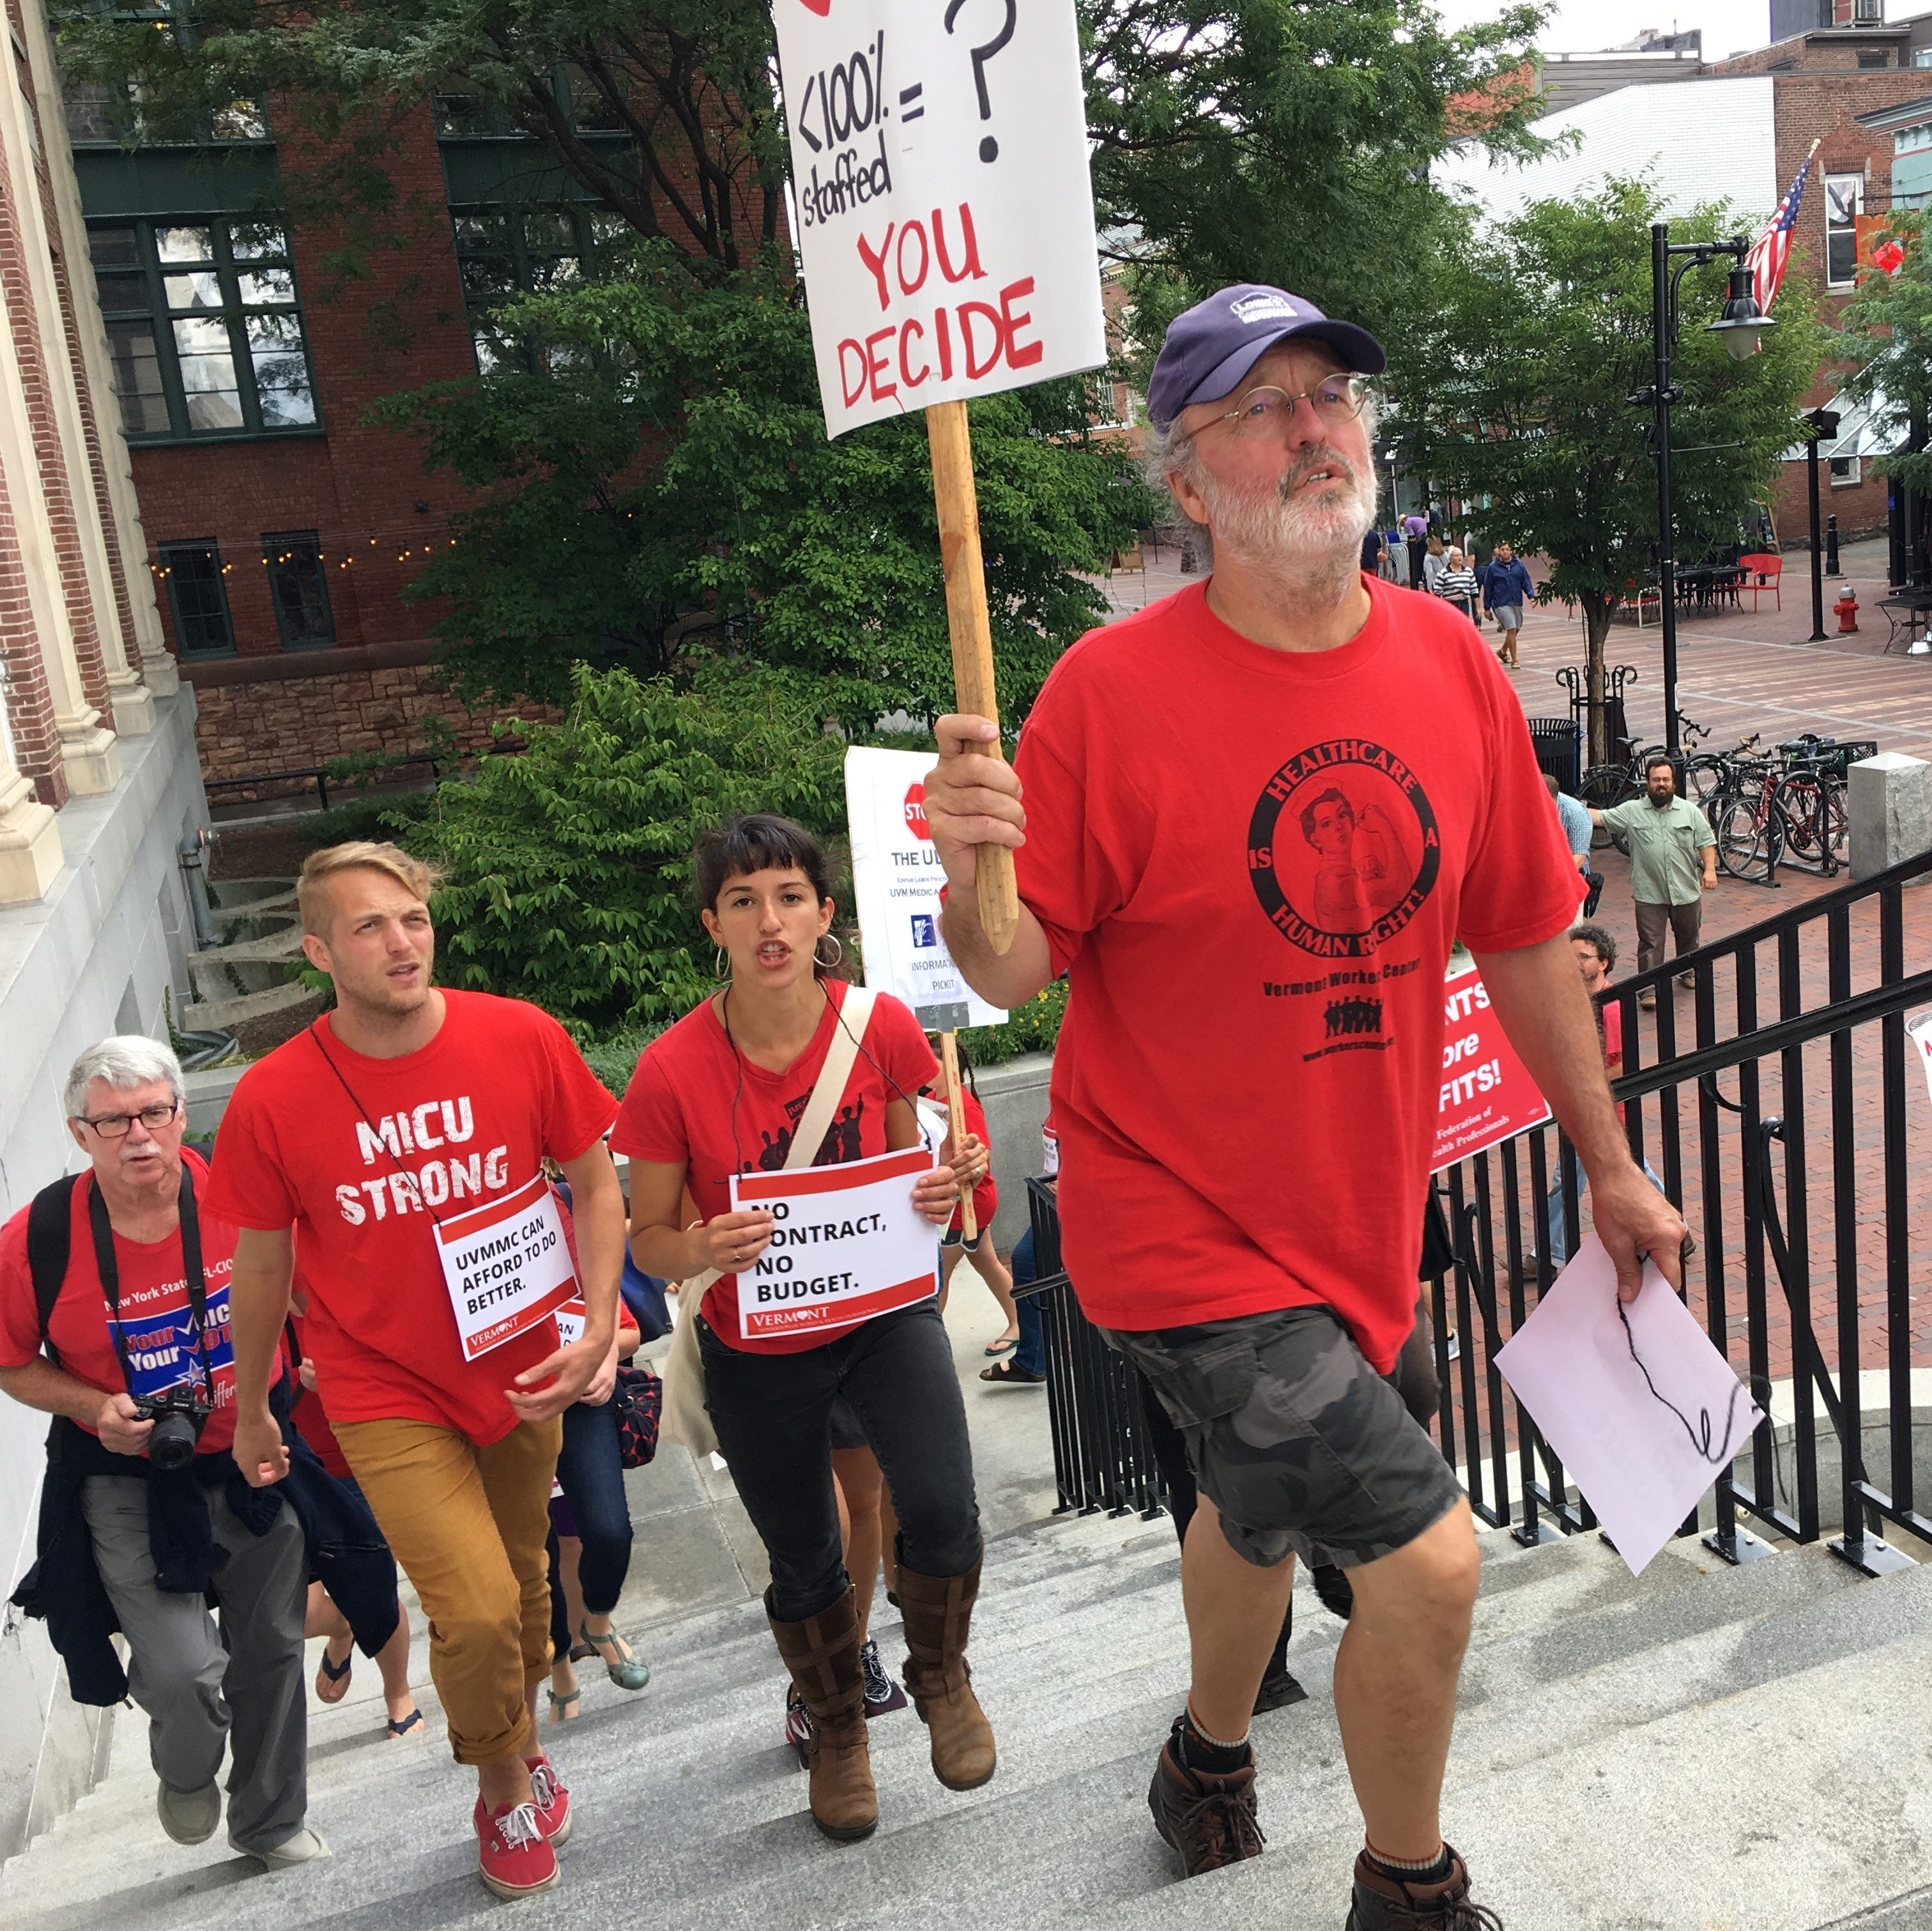 UVM medical center and nurses end labor dispute: How each side fared